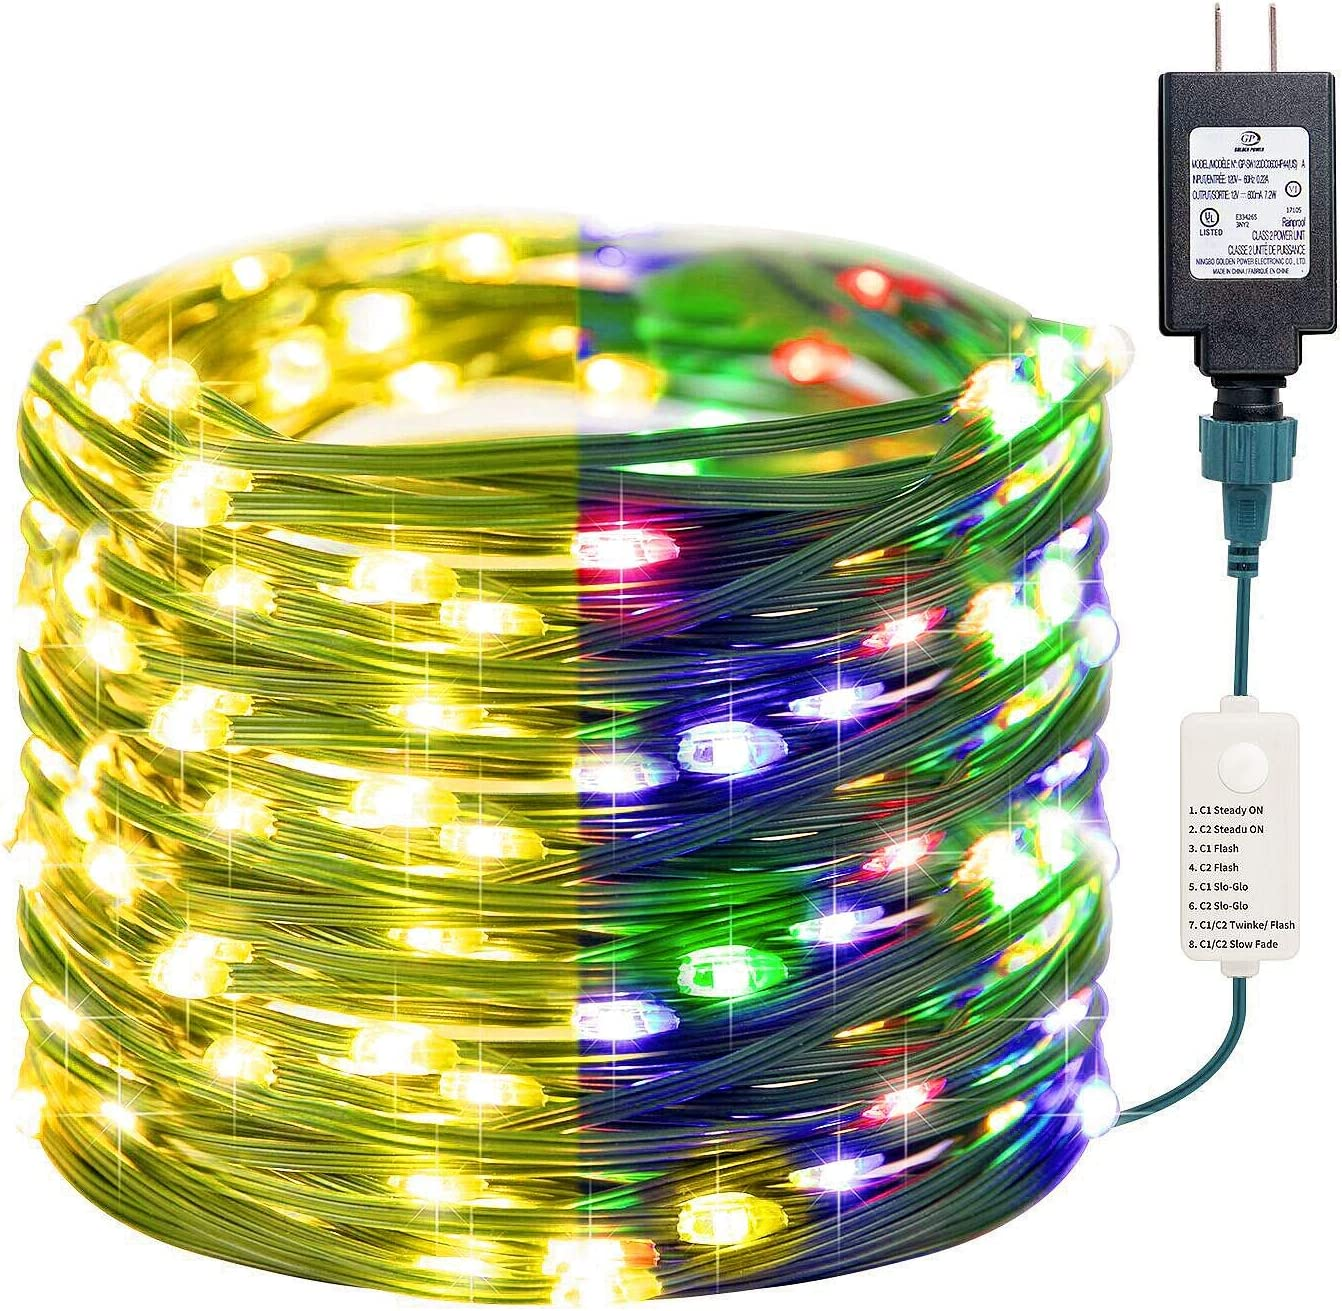 LED Color Changing Christmas Lights, 8 Modes 38 Ft. 96 LED Fairy Twinkle Plug in Multicolor Lights, Waterproof Green PVC Wire String Lights for Xmas Indoor Outdoor Office Tree Wedding Party Decor